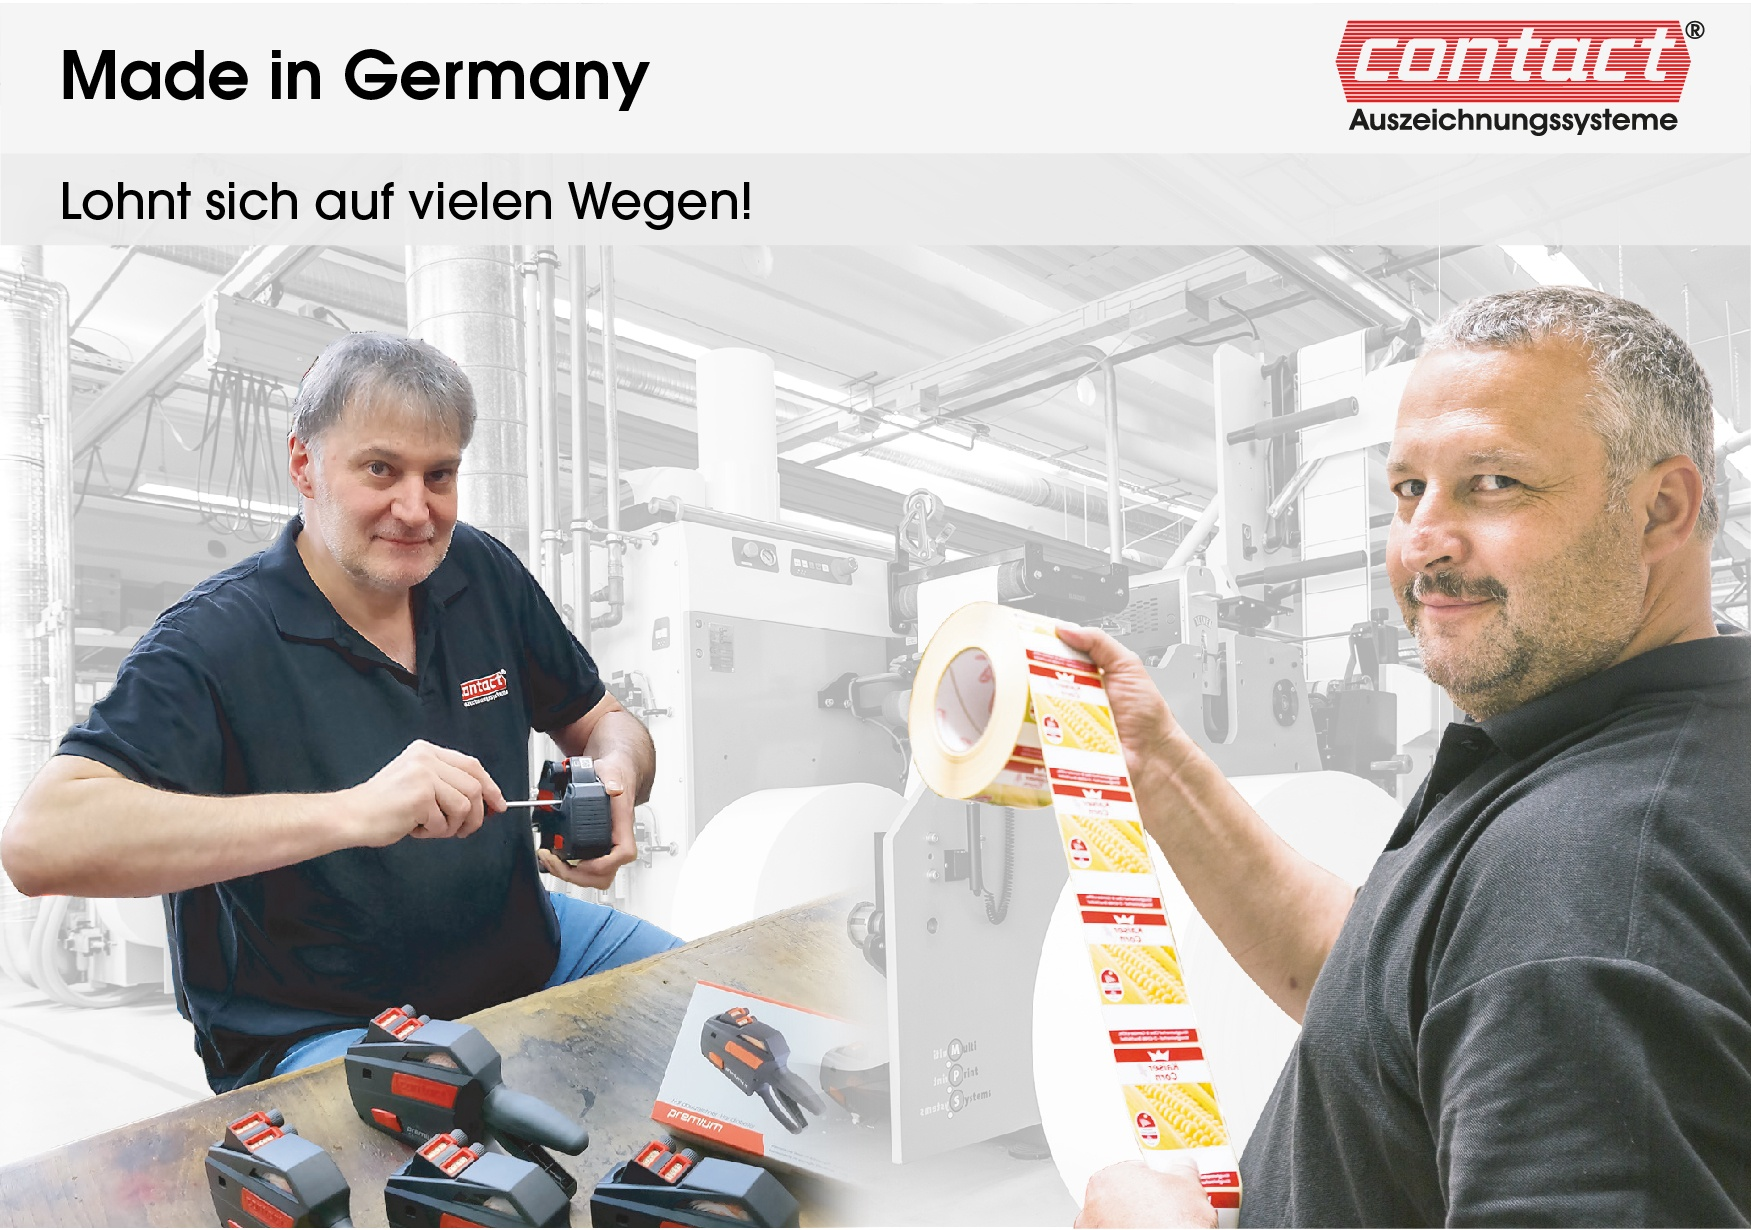 contact - quality made in germany - contact Auszeichnungssysteme